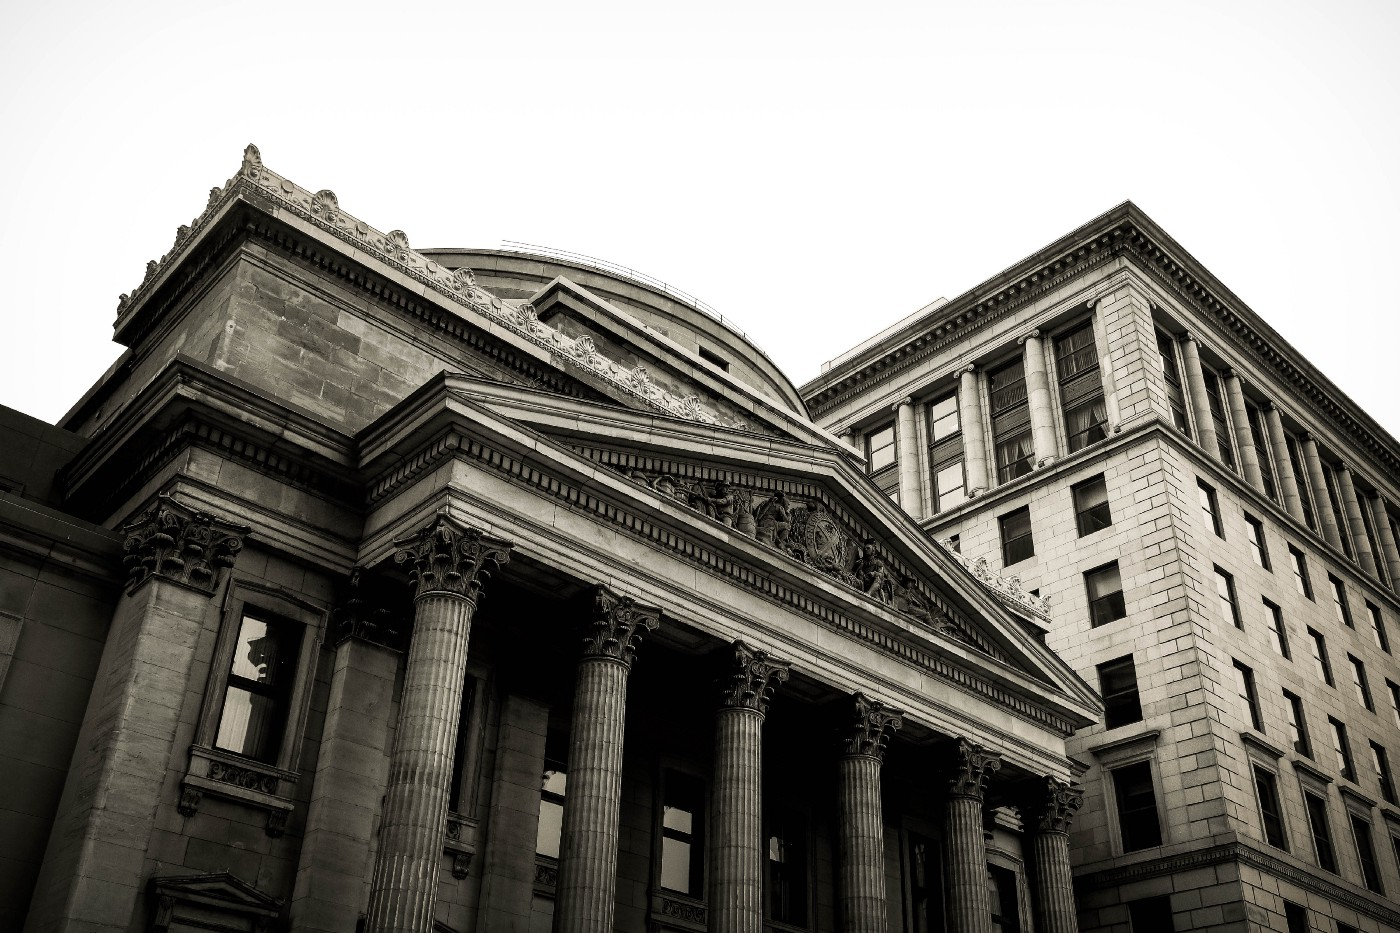 A stone bank with pillars and a fancy roof. You know, those horrible institutions that get rich by bankrupt the poor.